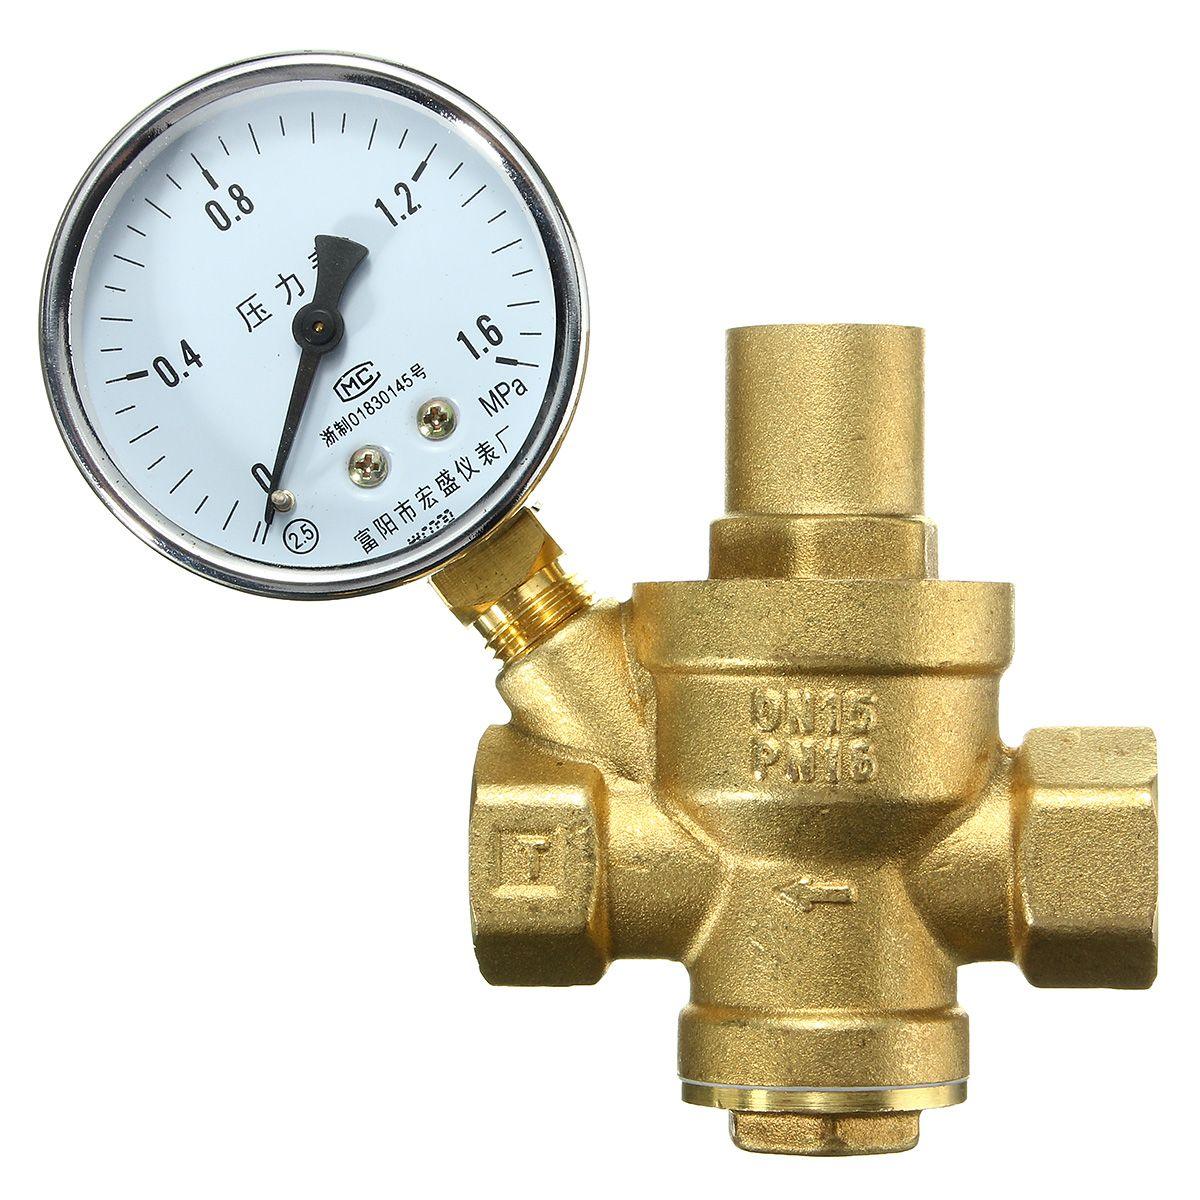 Dn15 1 2inch Bspp Brass Water Pressure Reducing Valve With Gauge Flow Adjustable Electrical Equipment Supplies From Industrial Scientific On Banggood Com Brass Valve Water